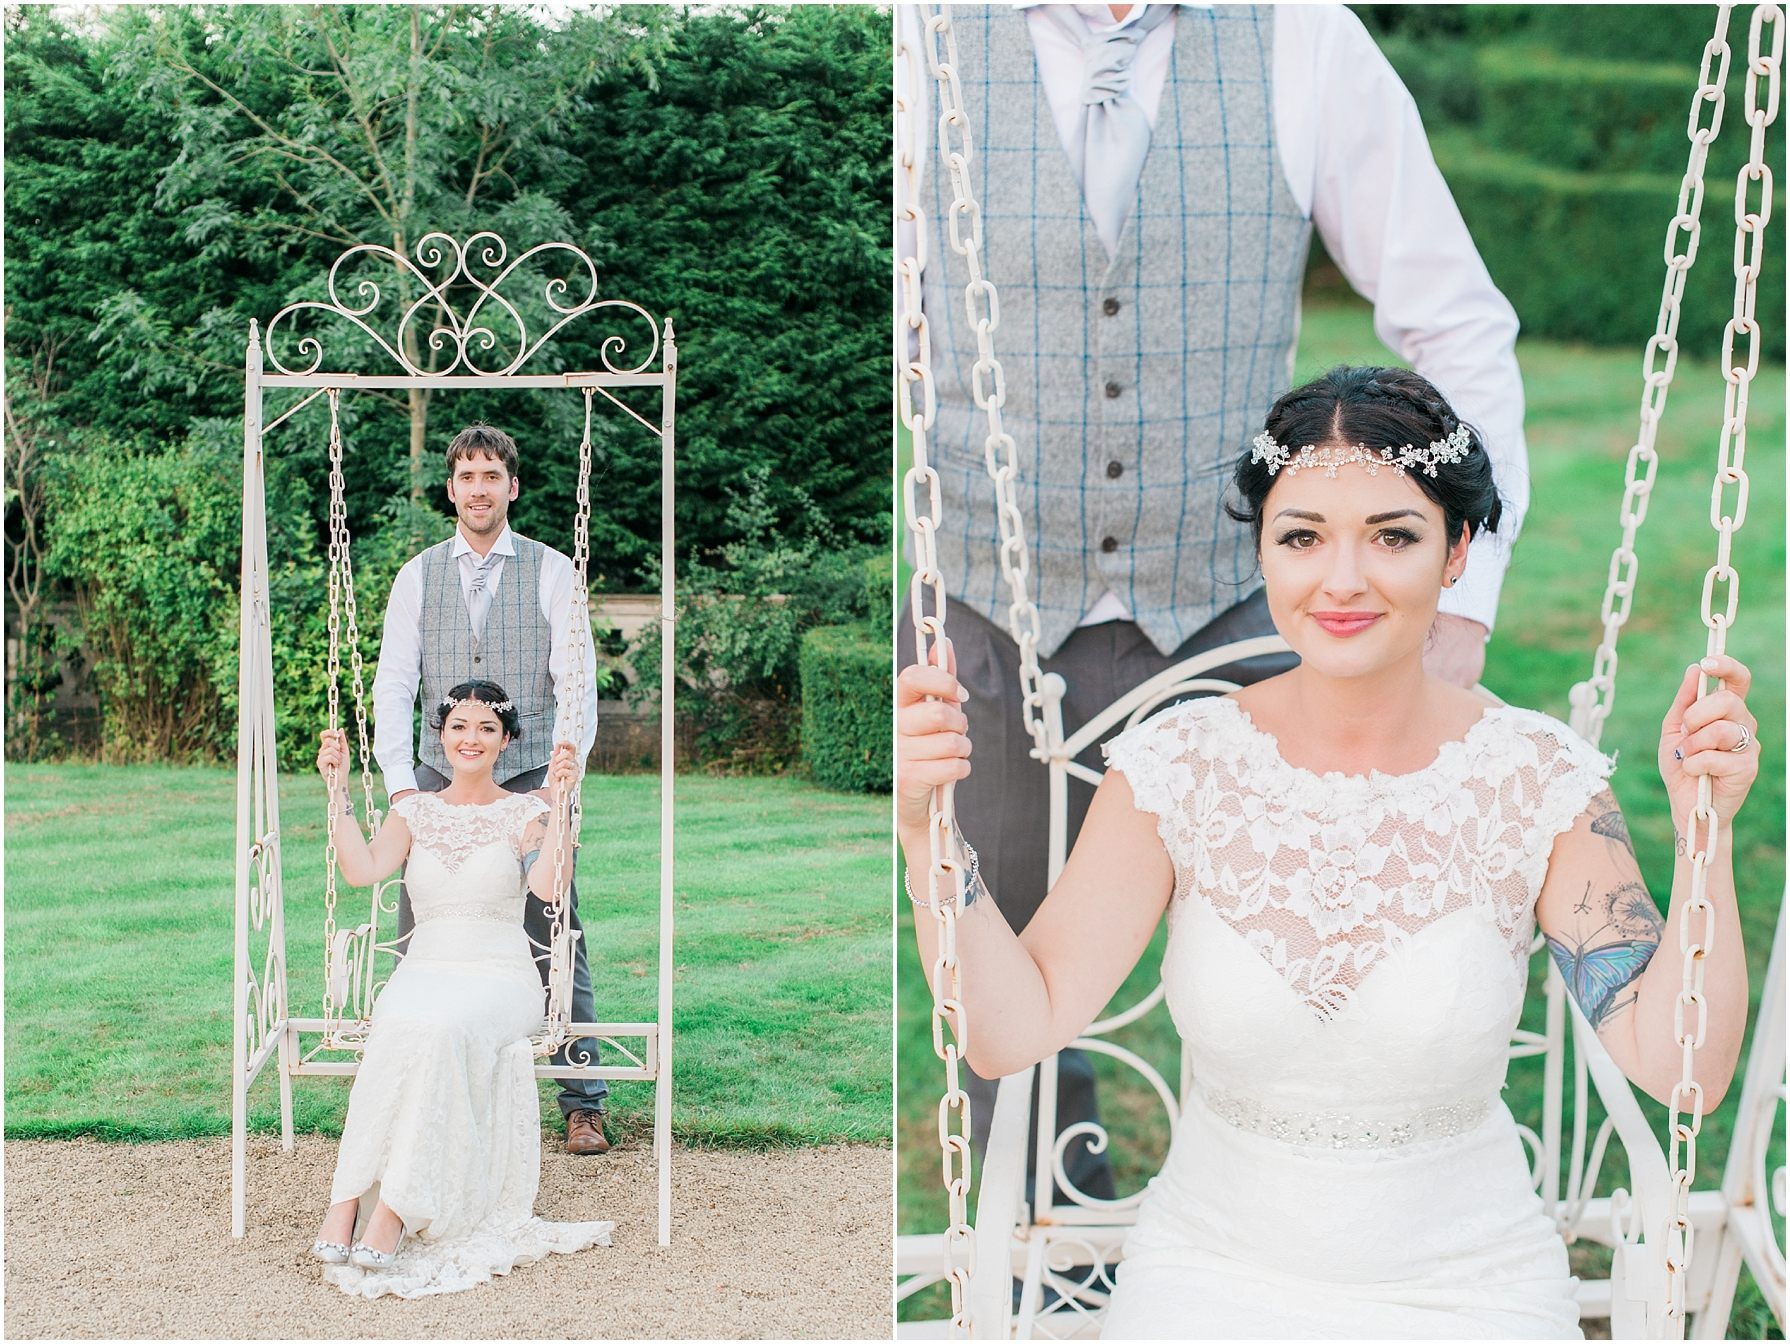 bride sitting on a swing and her groom standing behind her